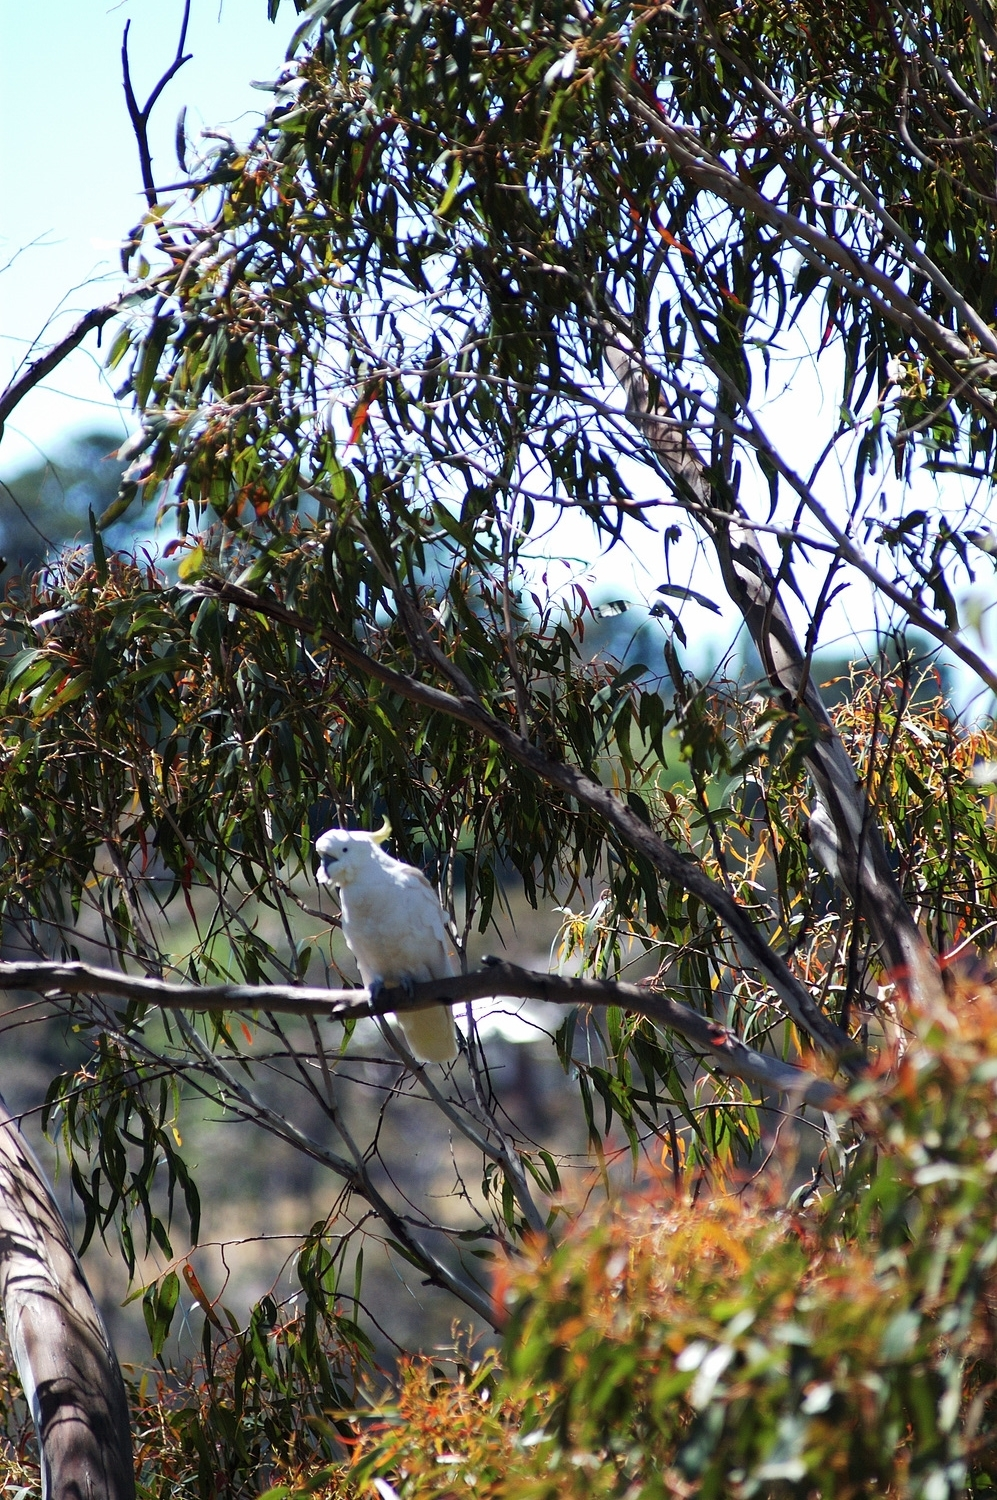 A cockatiel in a eucalyptus tree